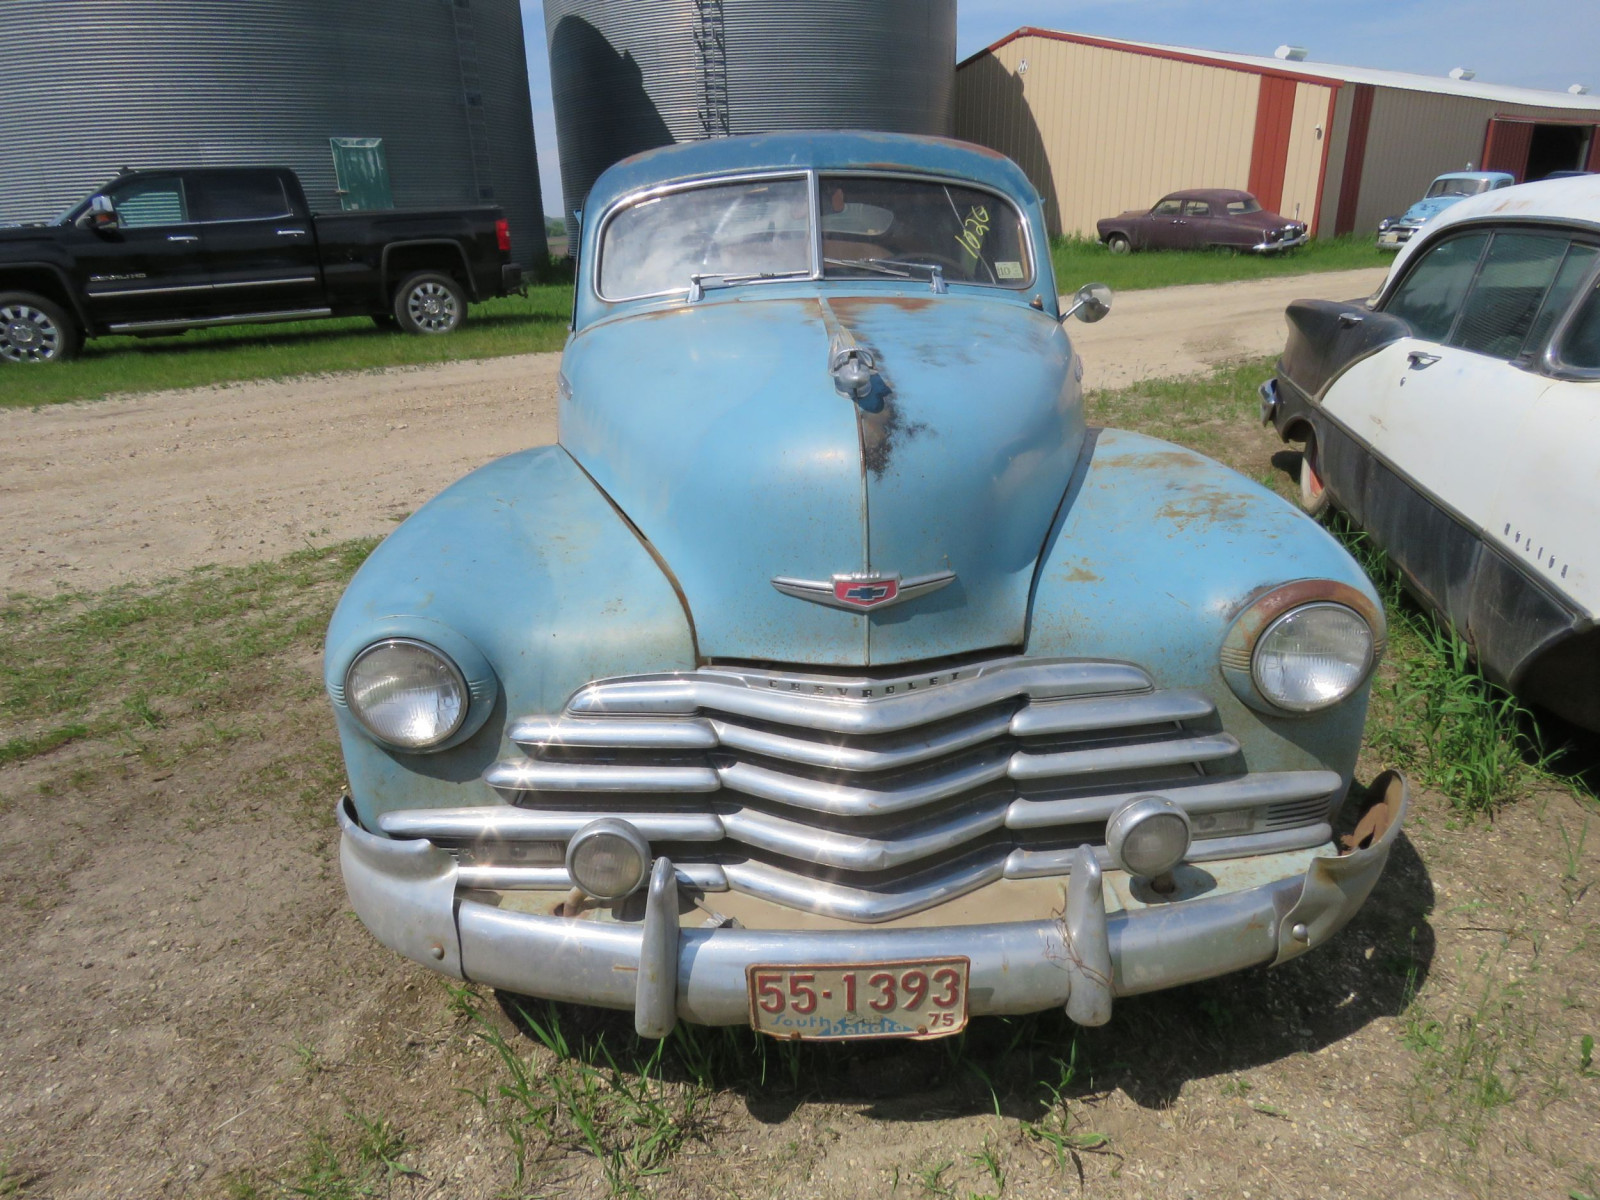 1947 Chevrolet Fleet line 2dr Sedan - Image 2